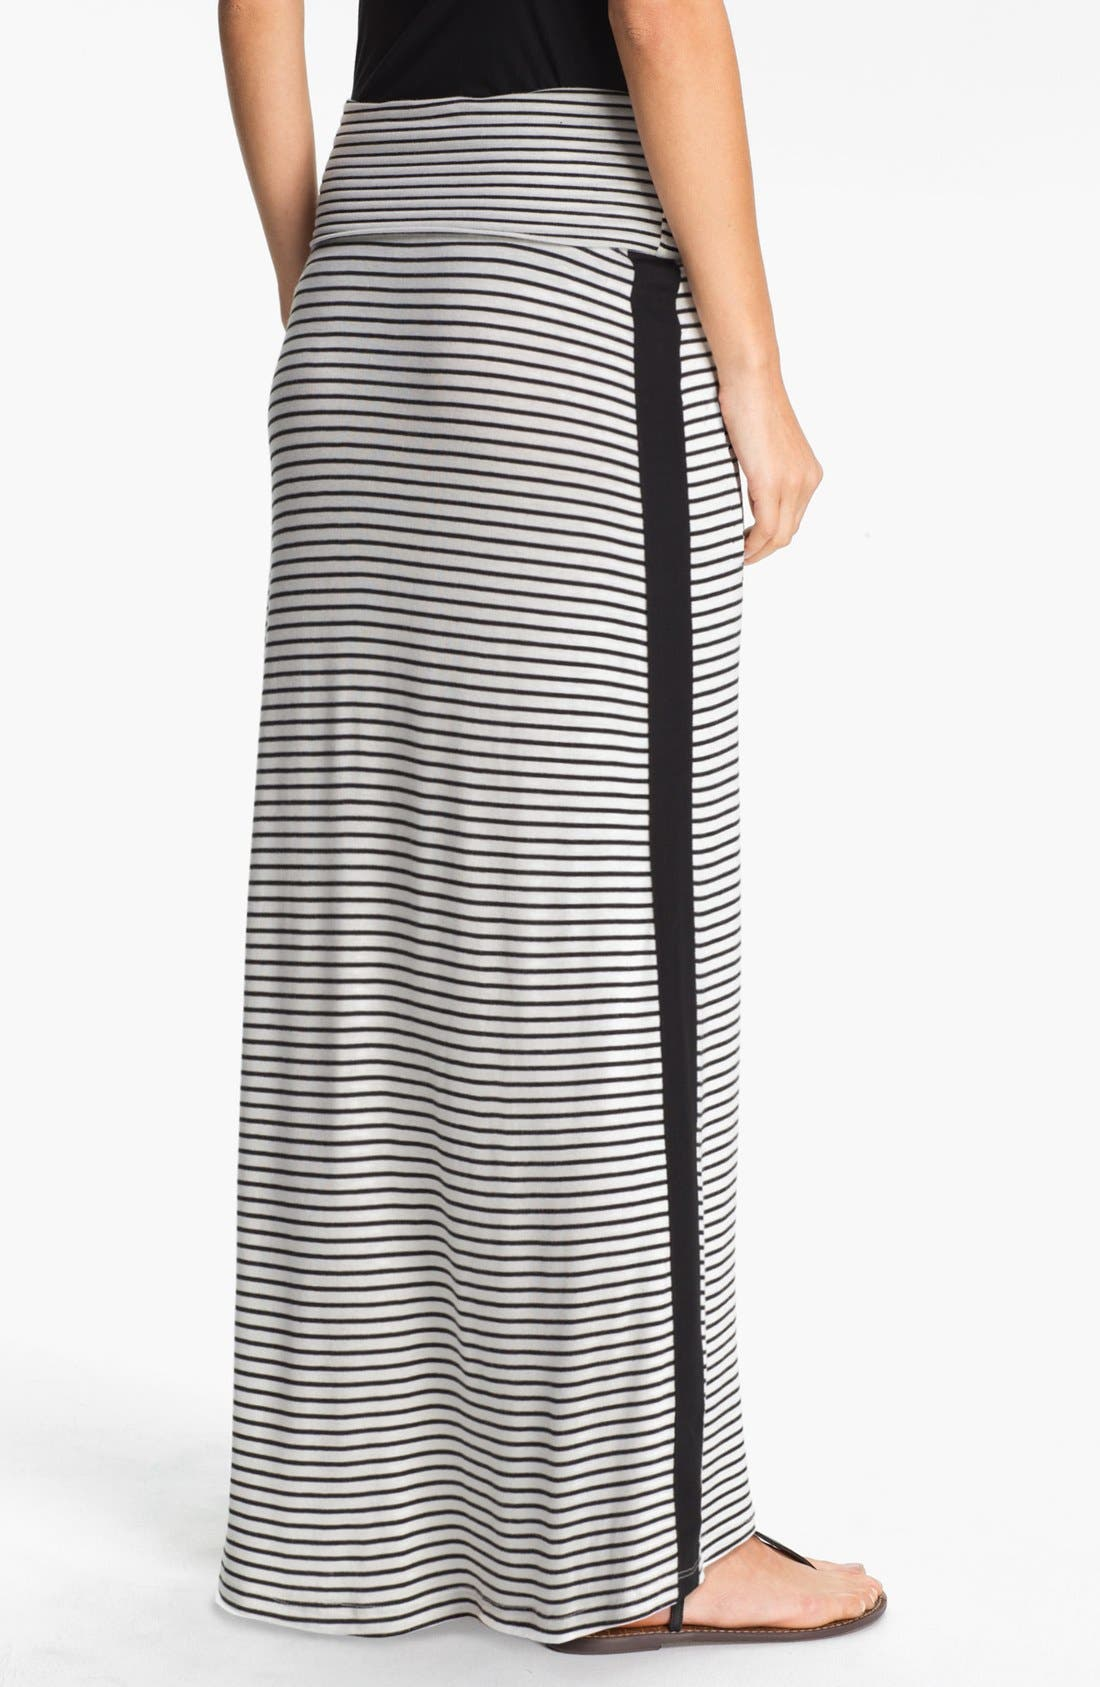 Alternate Image 2  - Everleigh Tuxedo Stripe Maxi Skirt (Petite)